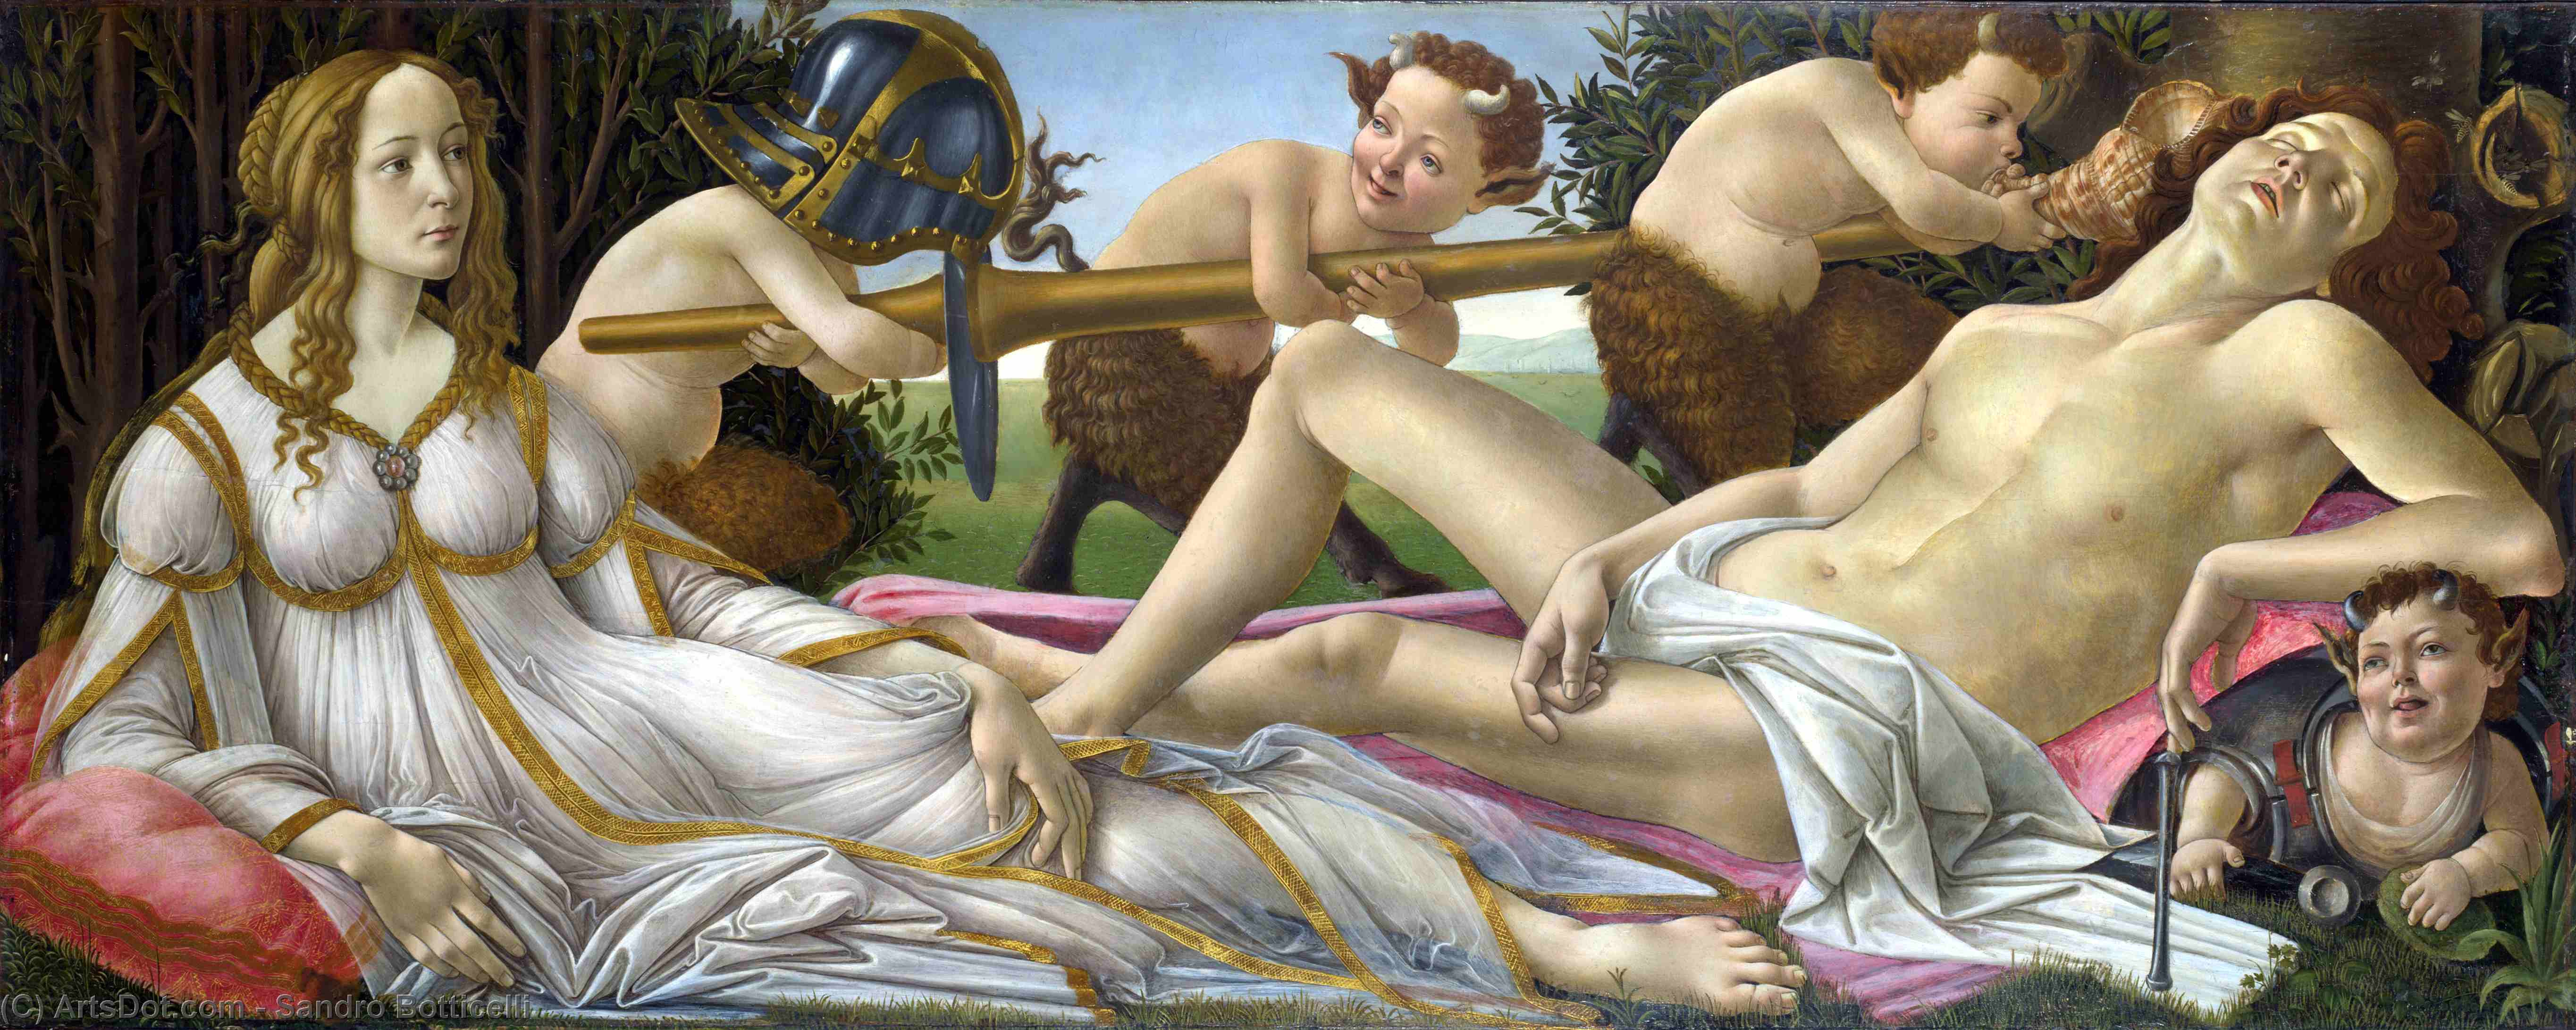 Wikioo.org - The Encyclopedia of Fine Arts - Painting, Artwork by Sandro Botticelli - Venus and Mars